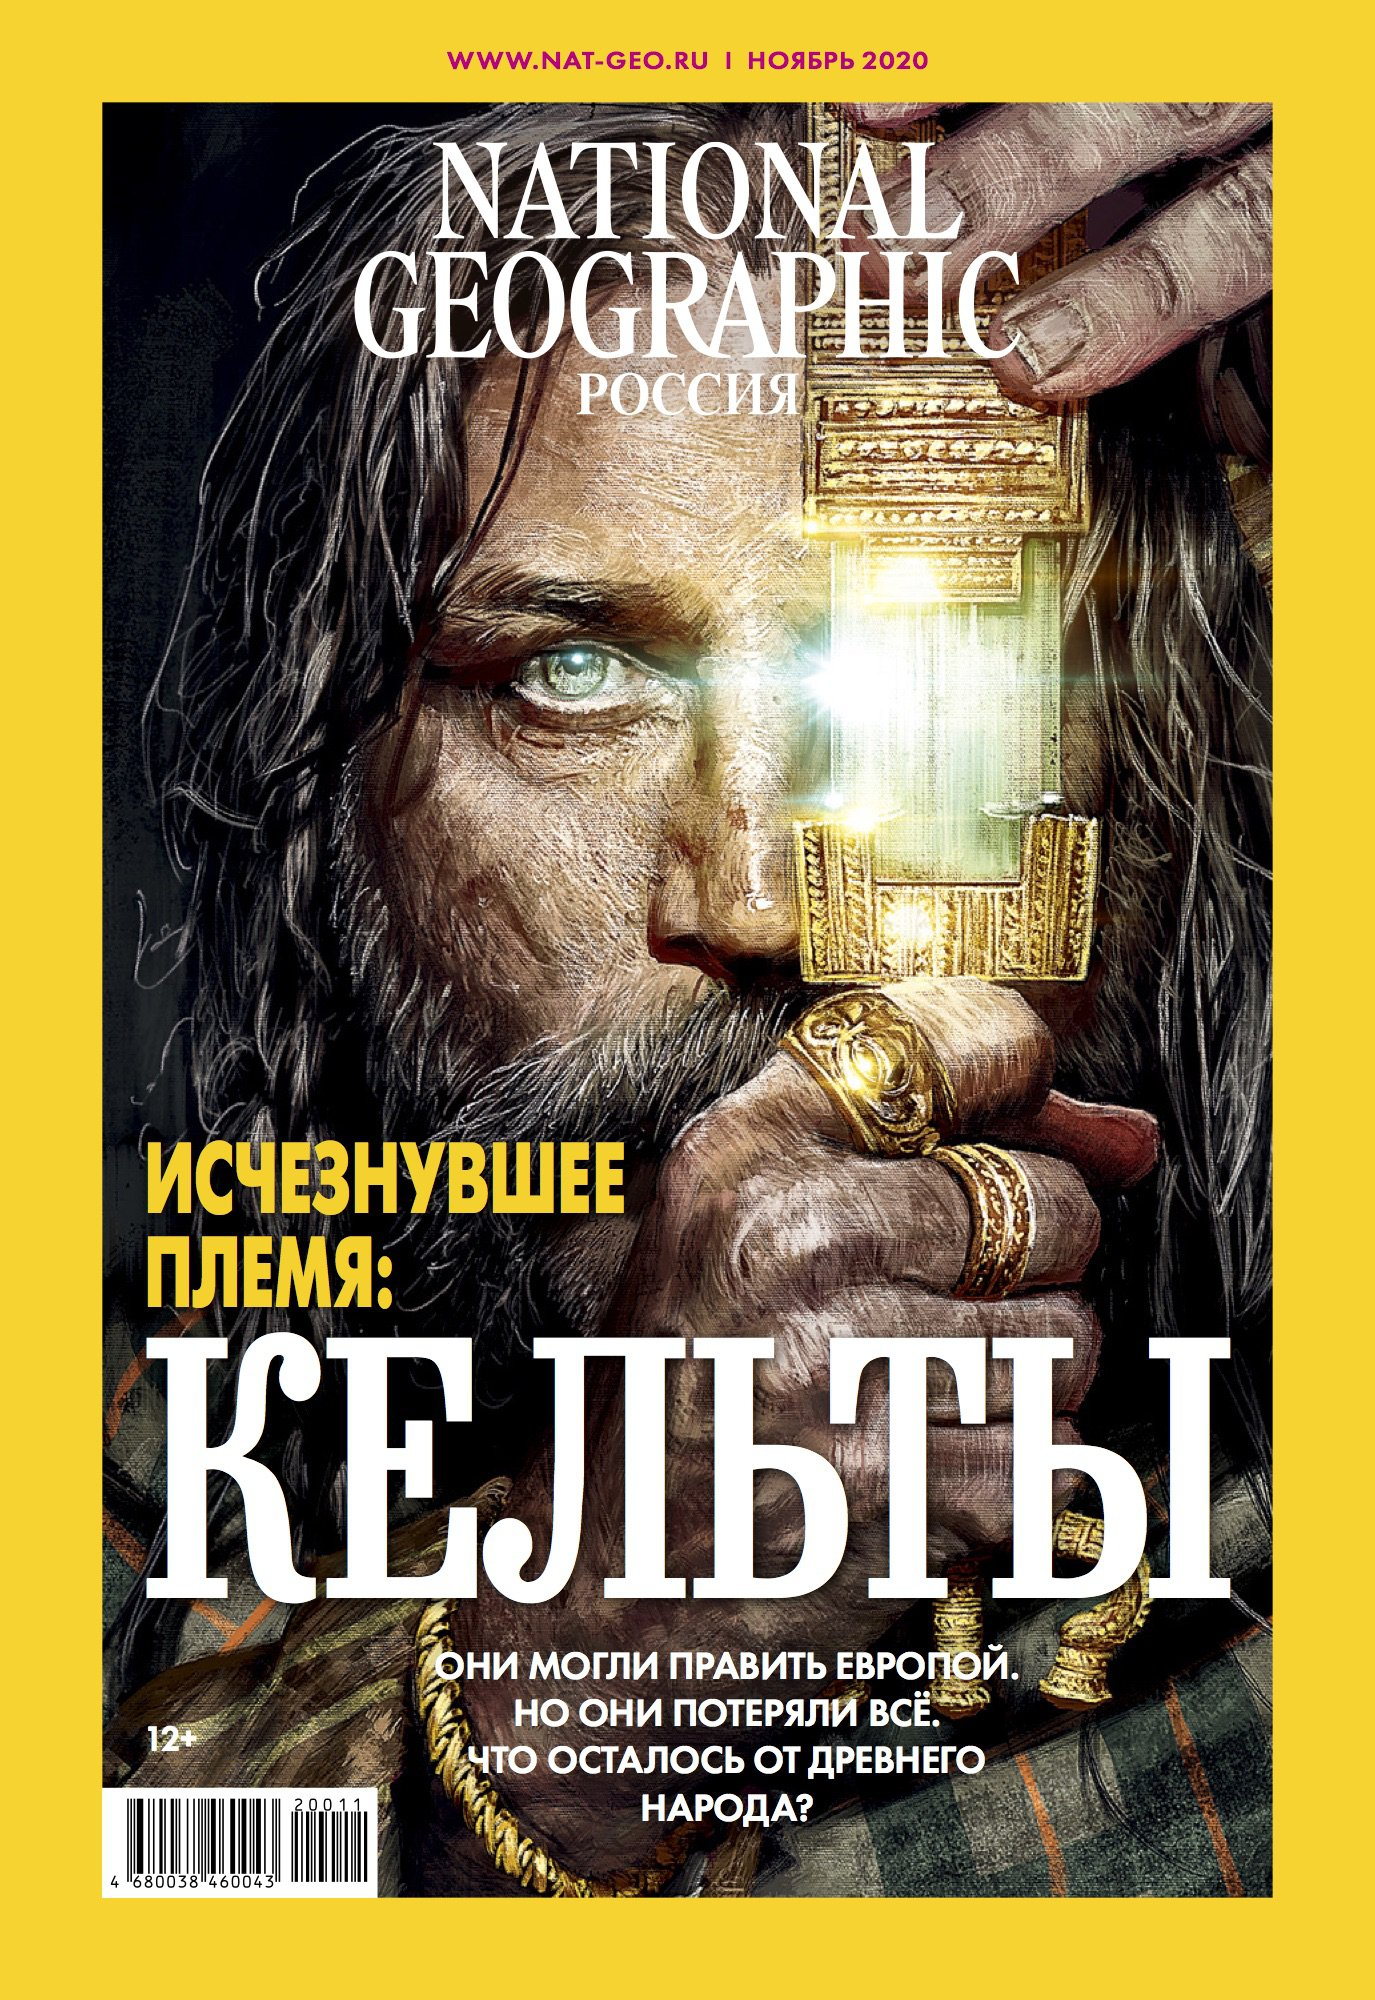 National Geographic Россия №204, ноябрь